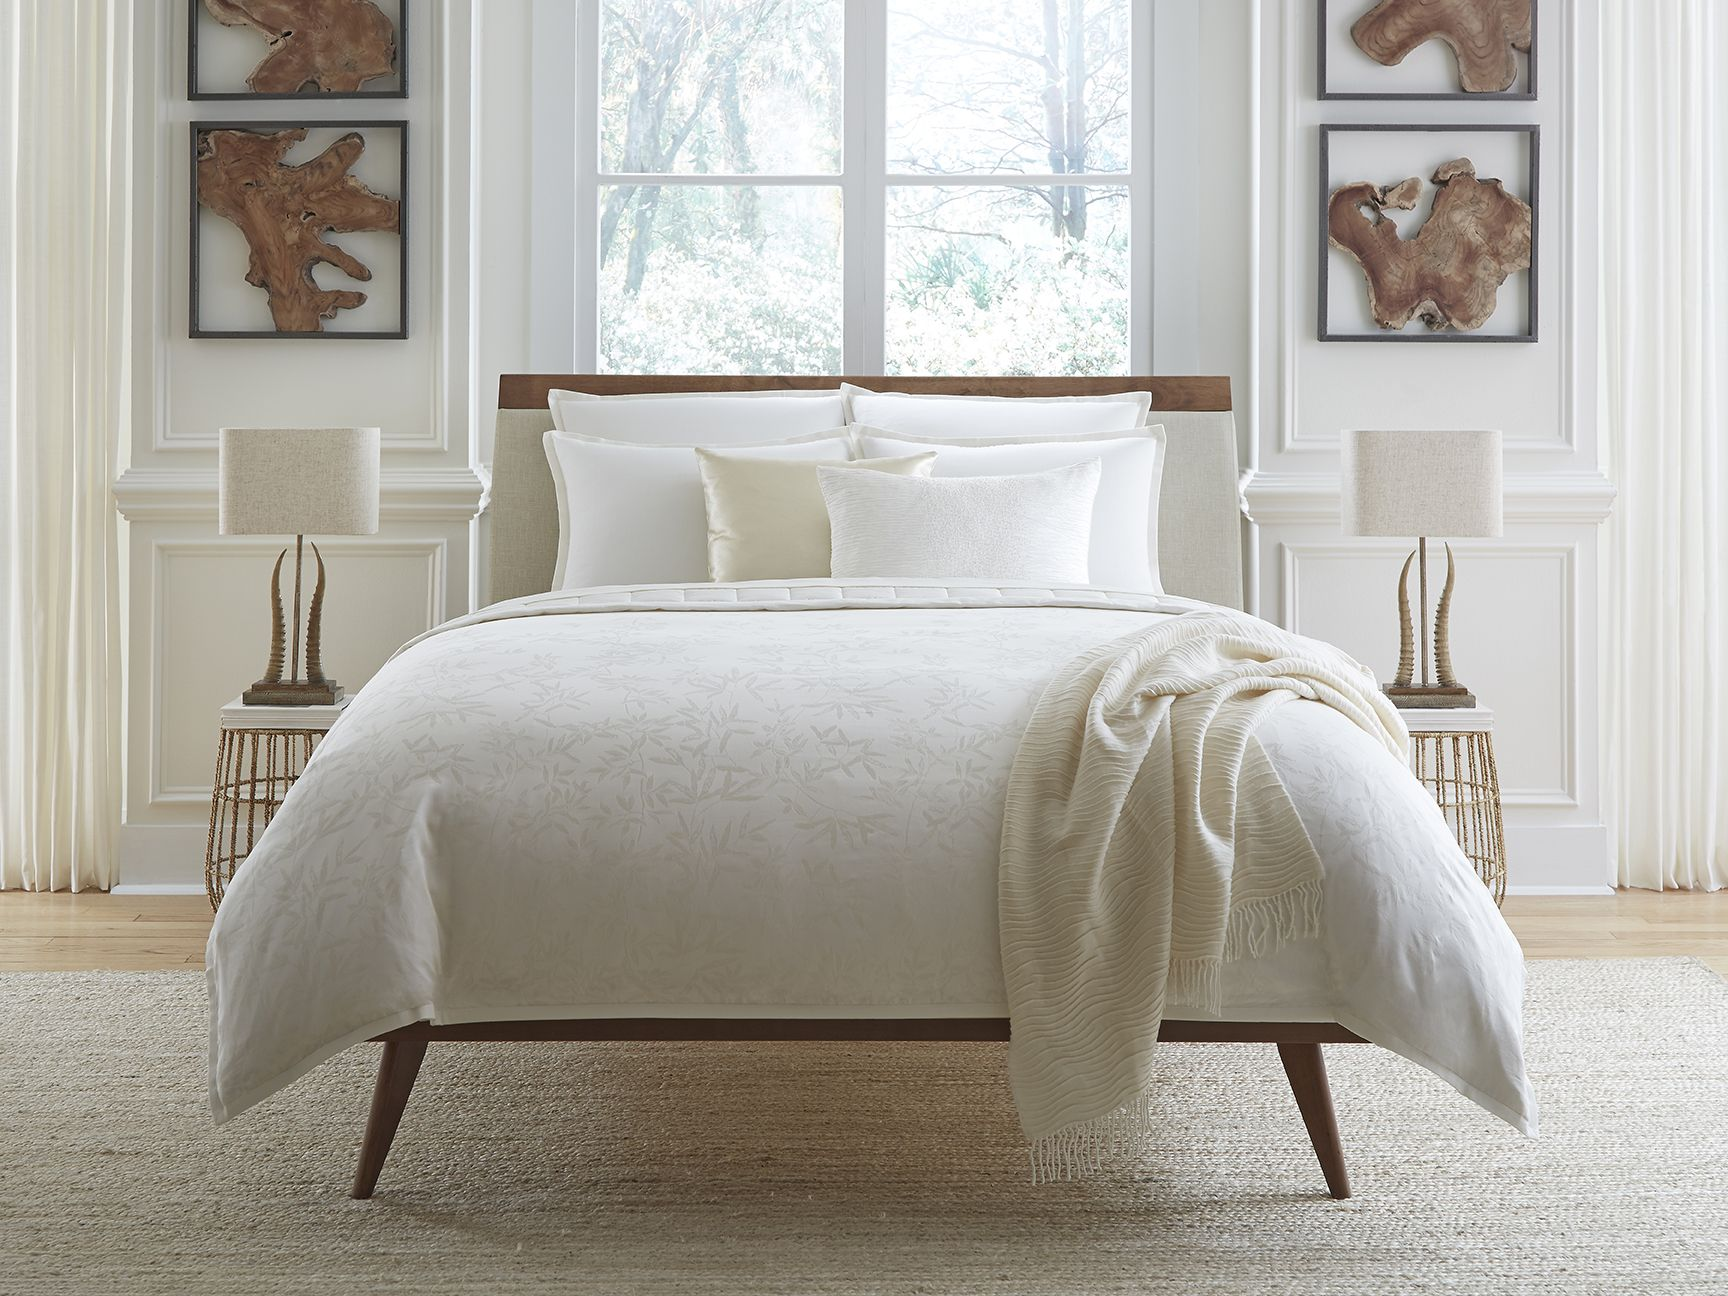 This Cotton Cashmere Bedding Is Our Most Luxurious Innovation Yet Inspired By Italian Landscapes Organic Vines Are Subtlety Woven Into The Fabric